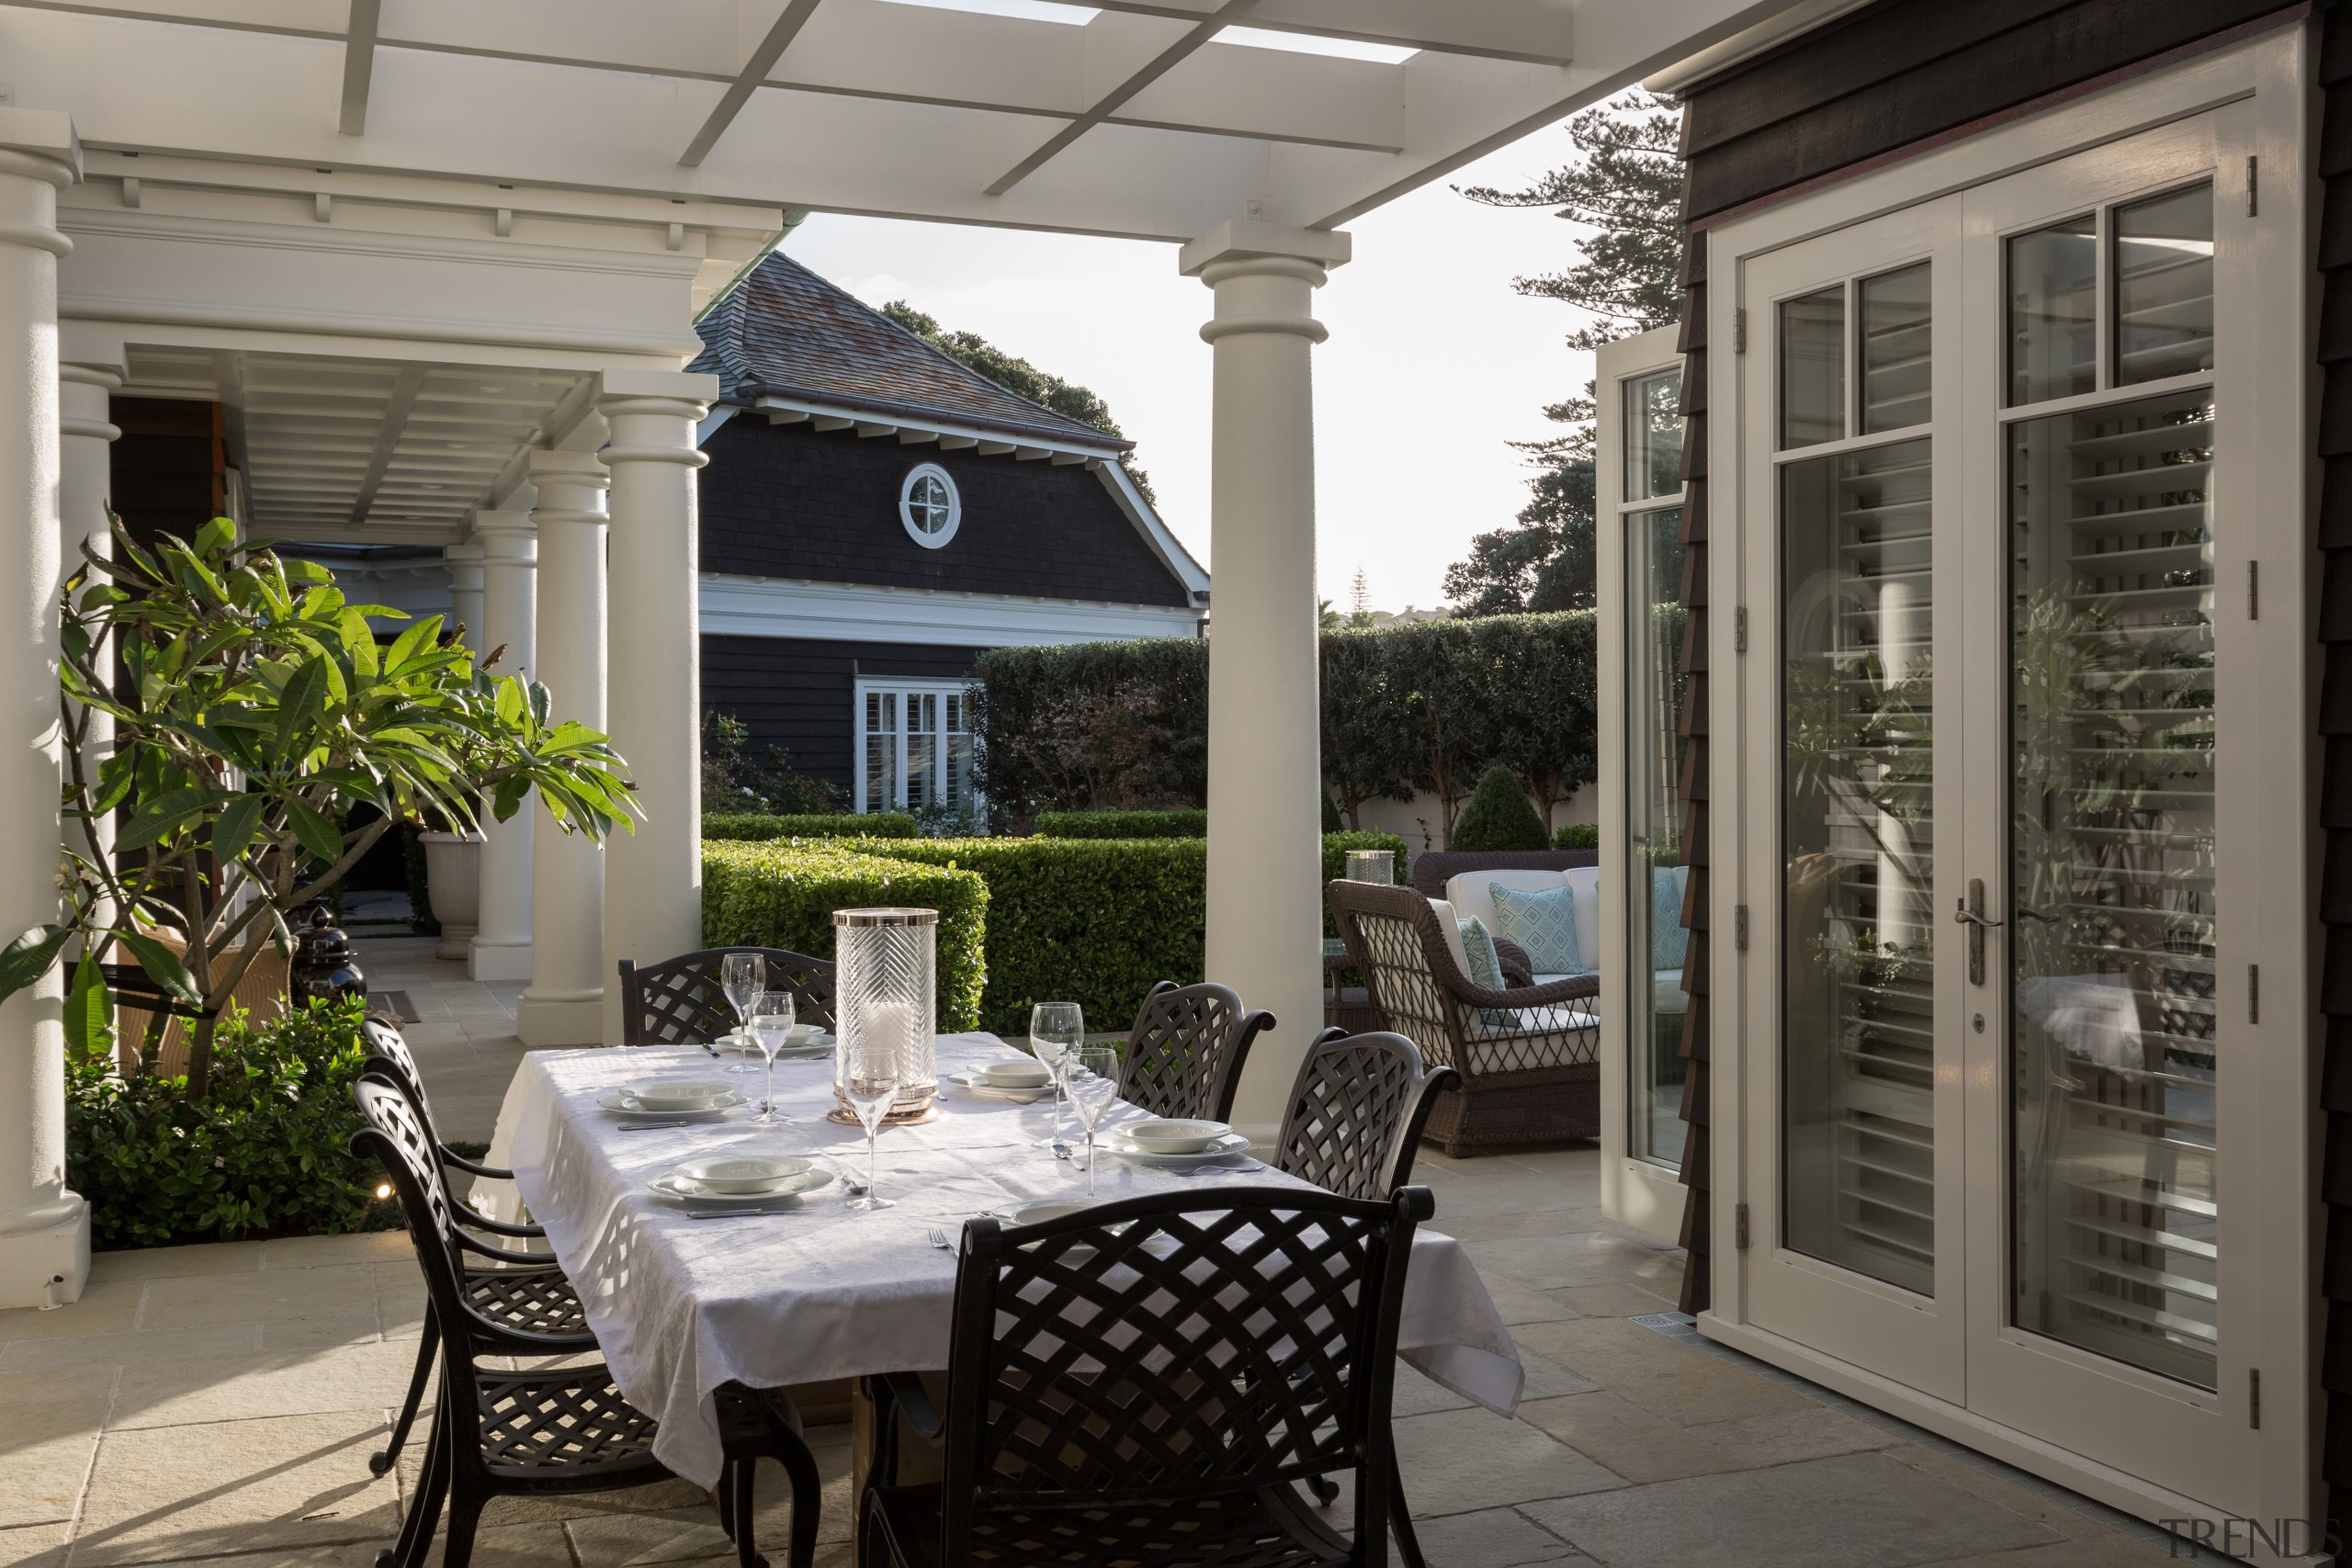 On this coastal home, a loggia is tucked dining room, home, interior design, outdoor structure, patio, porch, real estate, window, gray, black